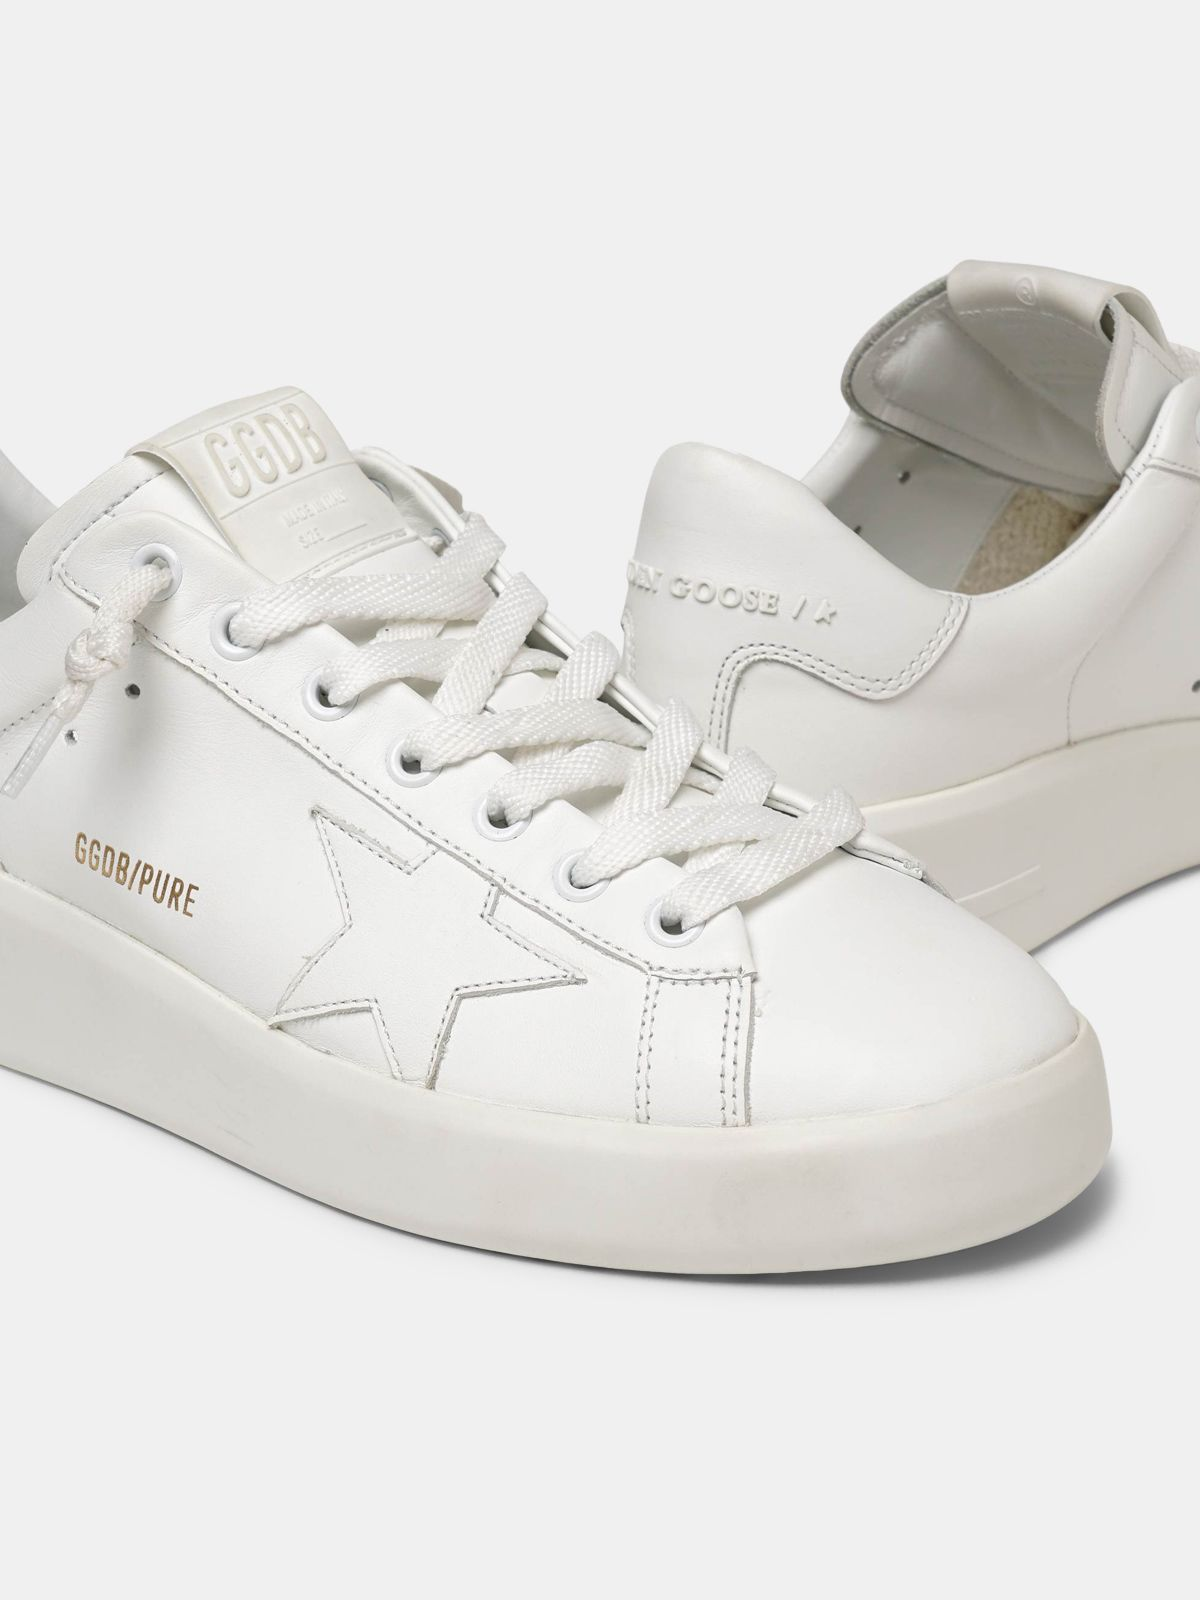 Golden Goose - Sneakers PURESTAR bianche in